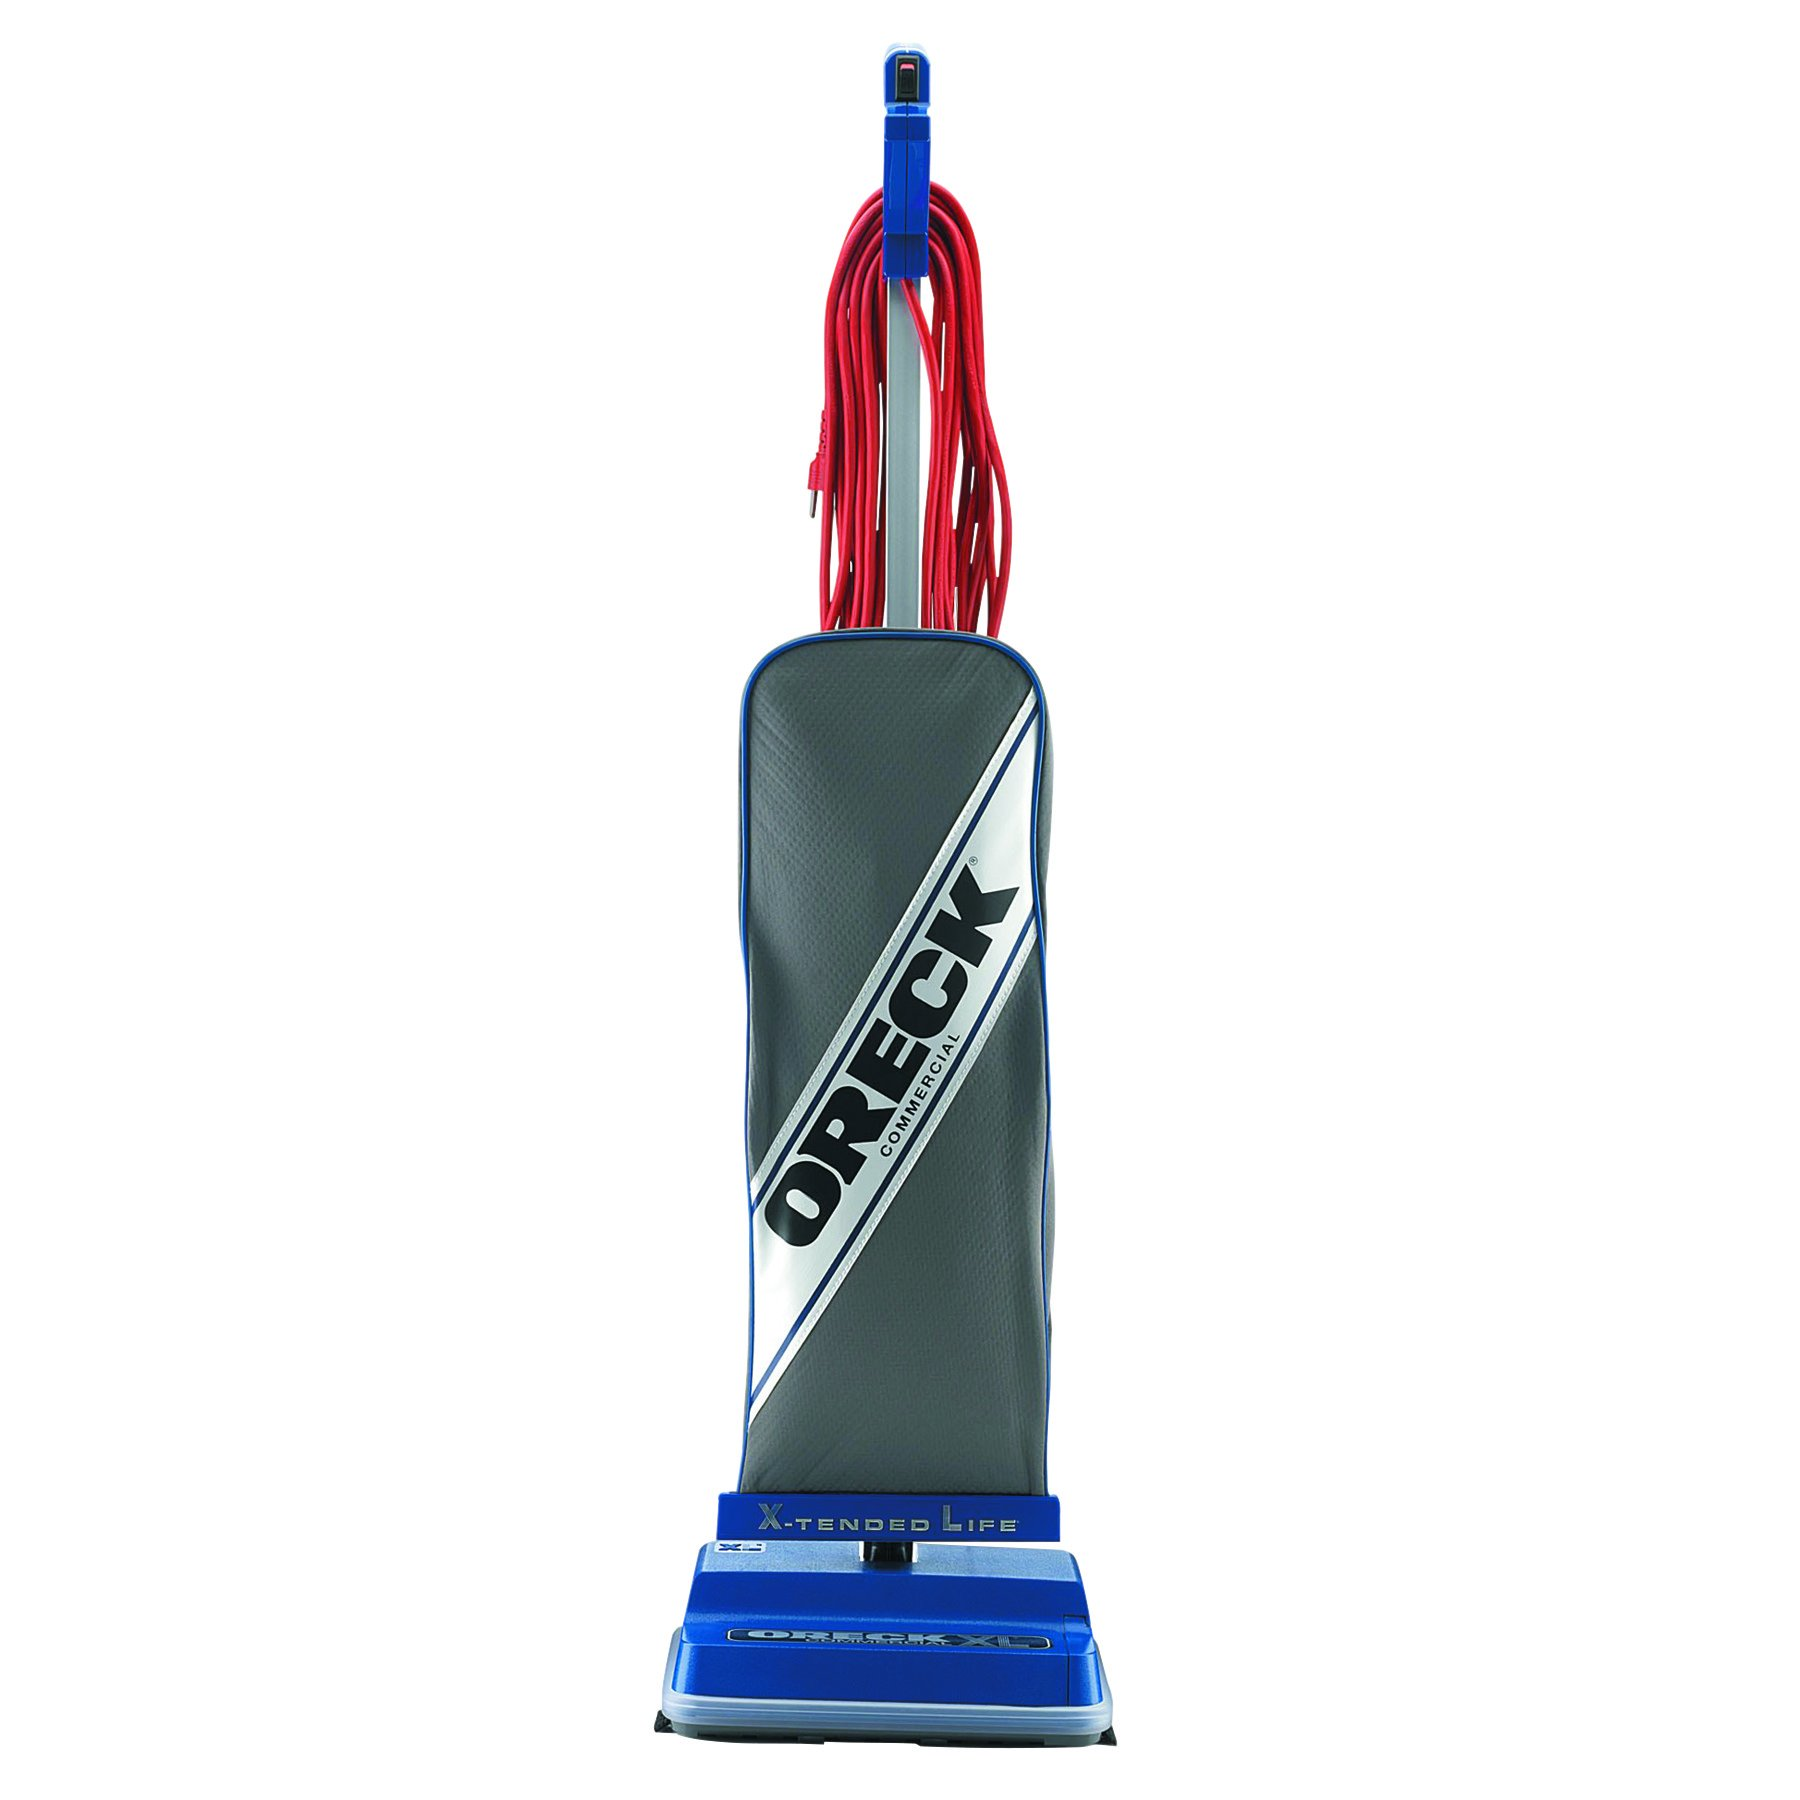 Oreck Commercial XL Commercial Upright Vacuum Cleaner, XL2100RHS by Oreck Commercial